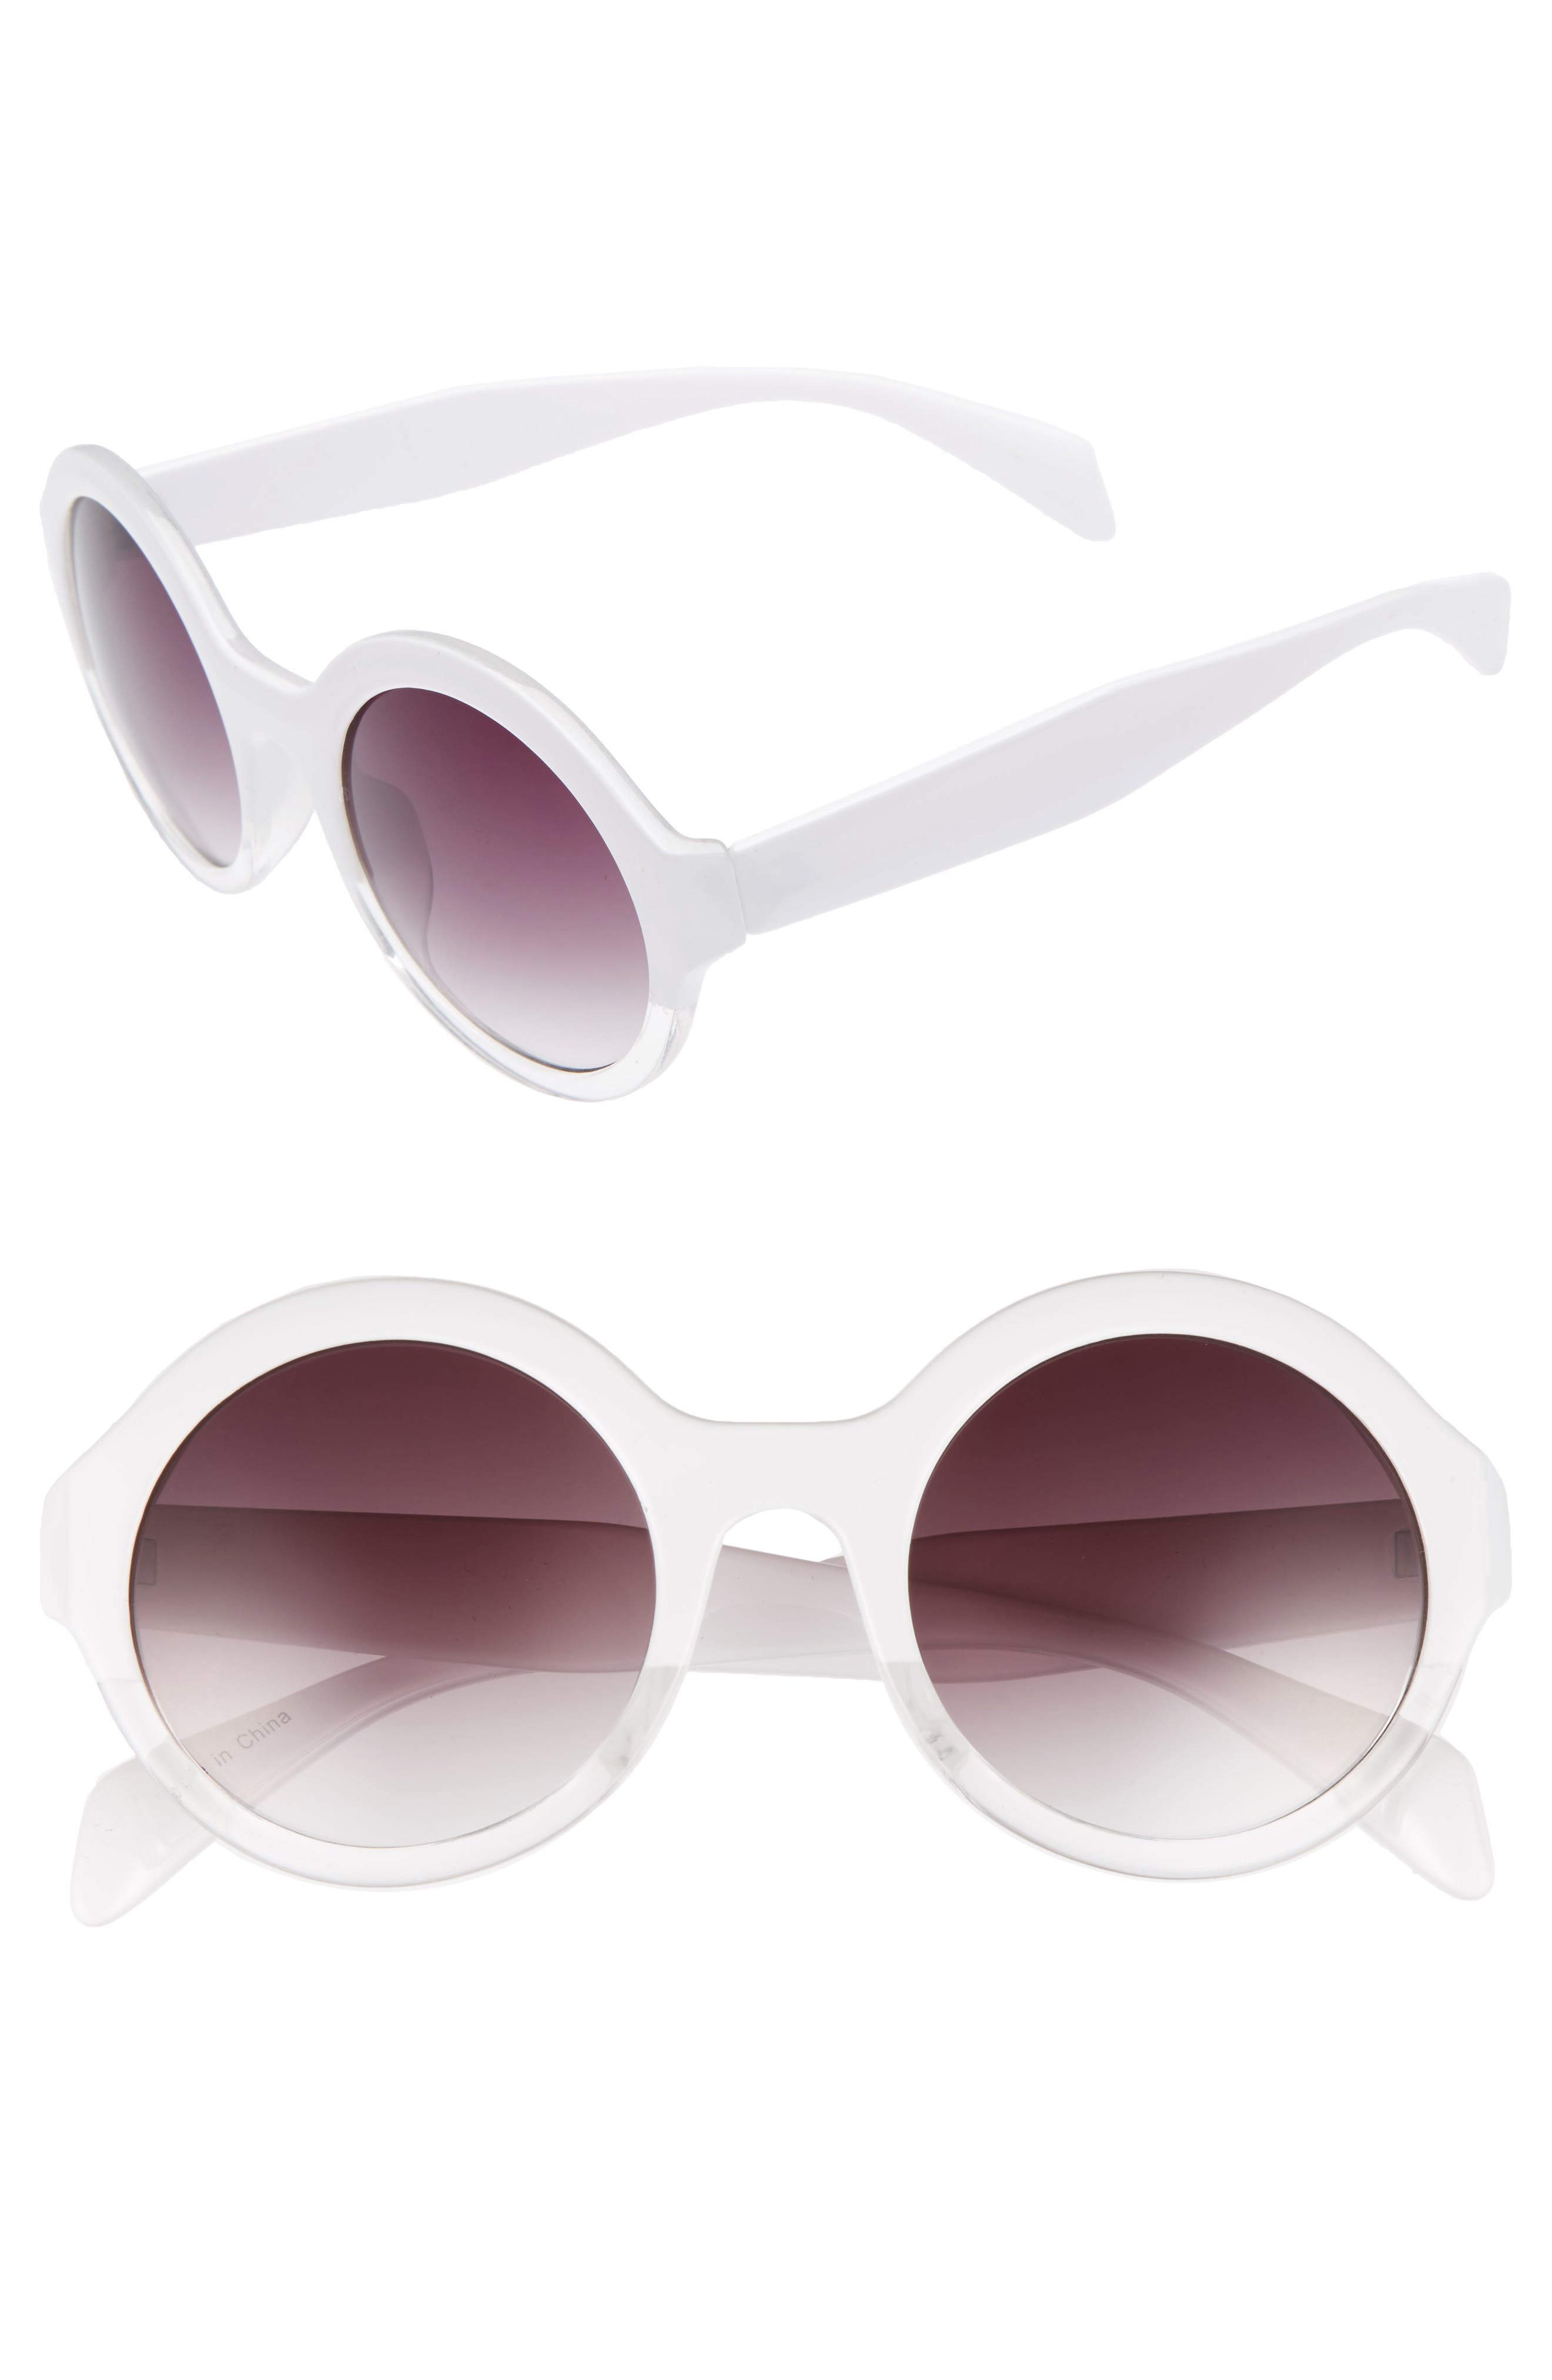 50mm Round 2 Tone Sunglasses,                             Main thumbnail 1, color,                             100